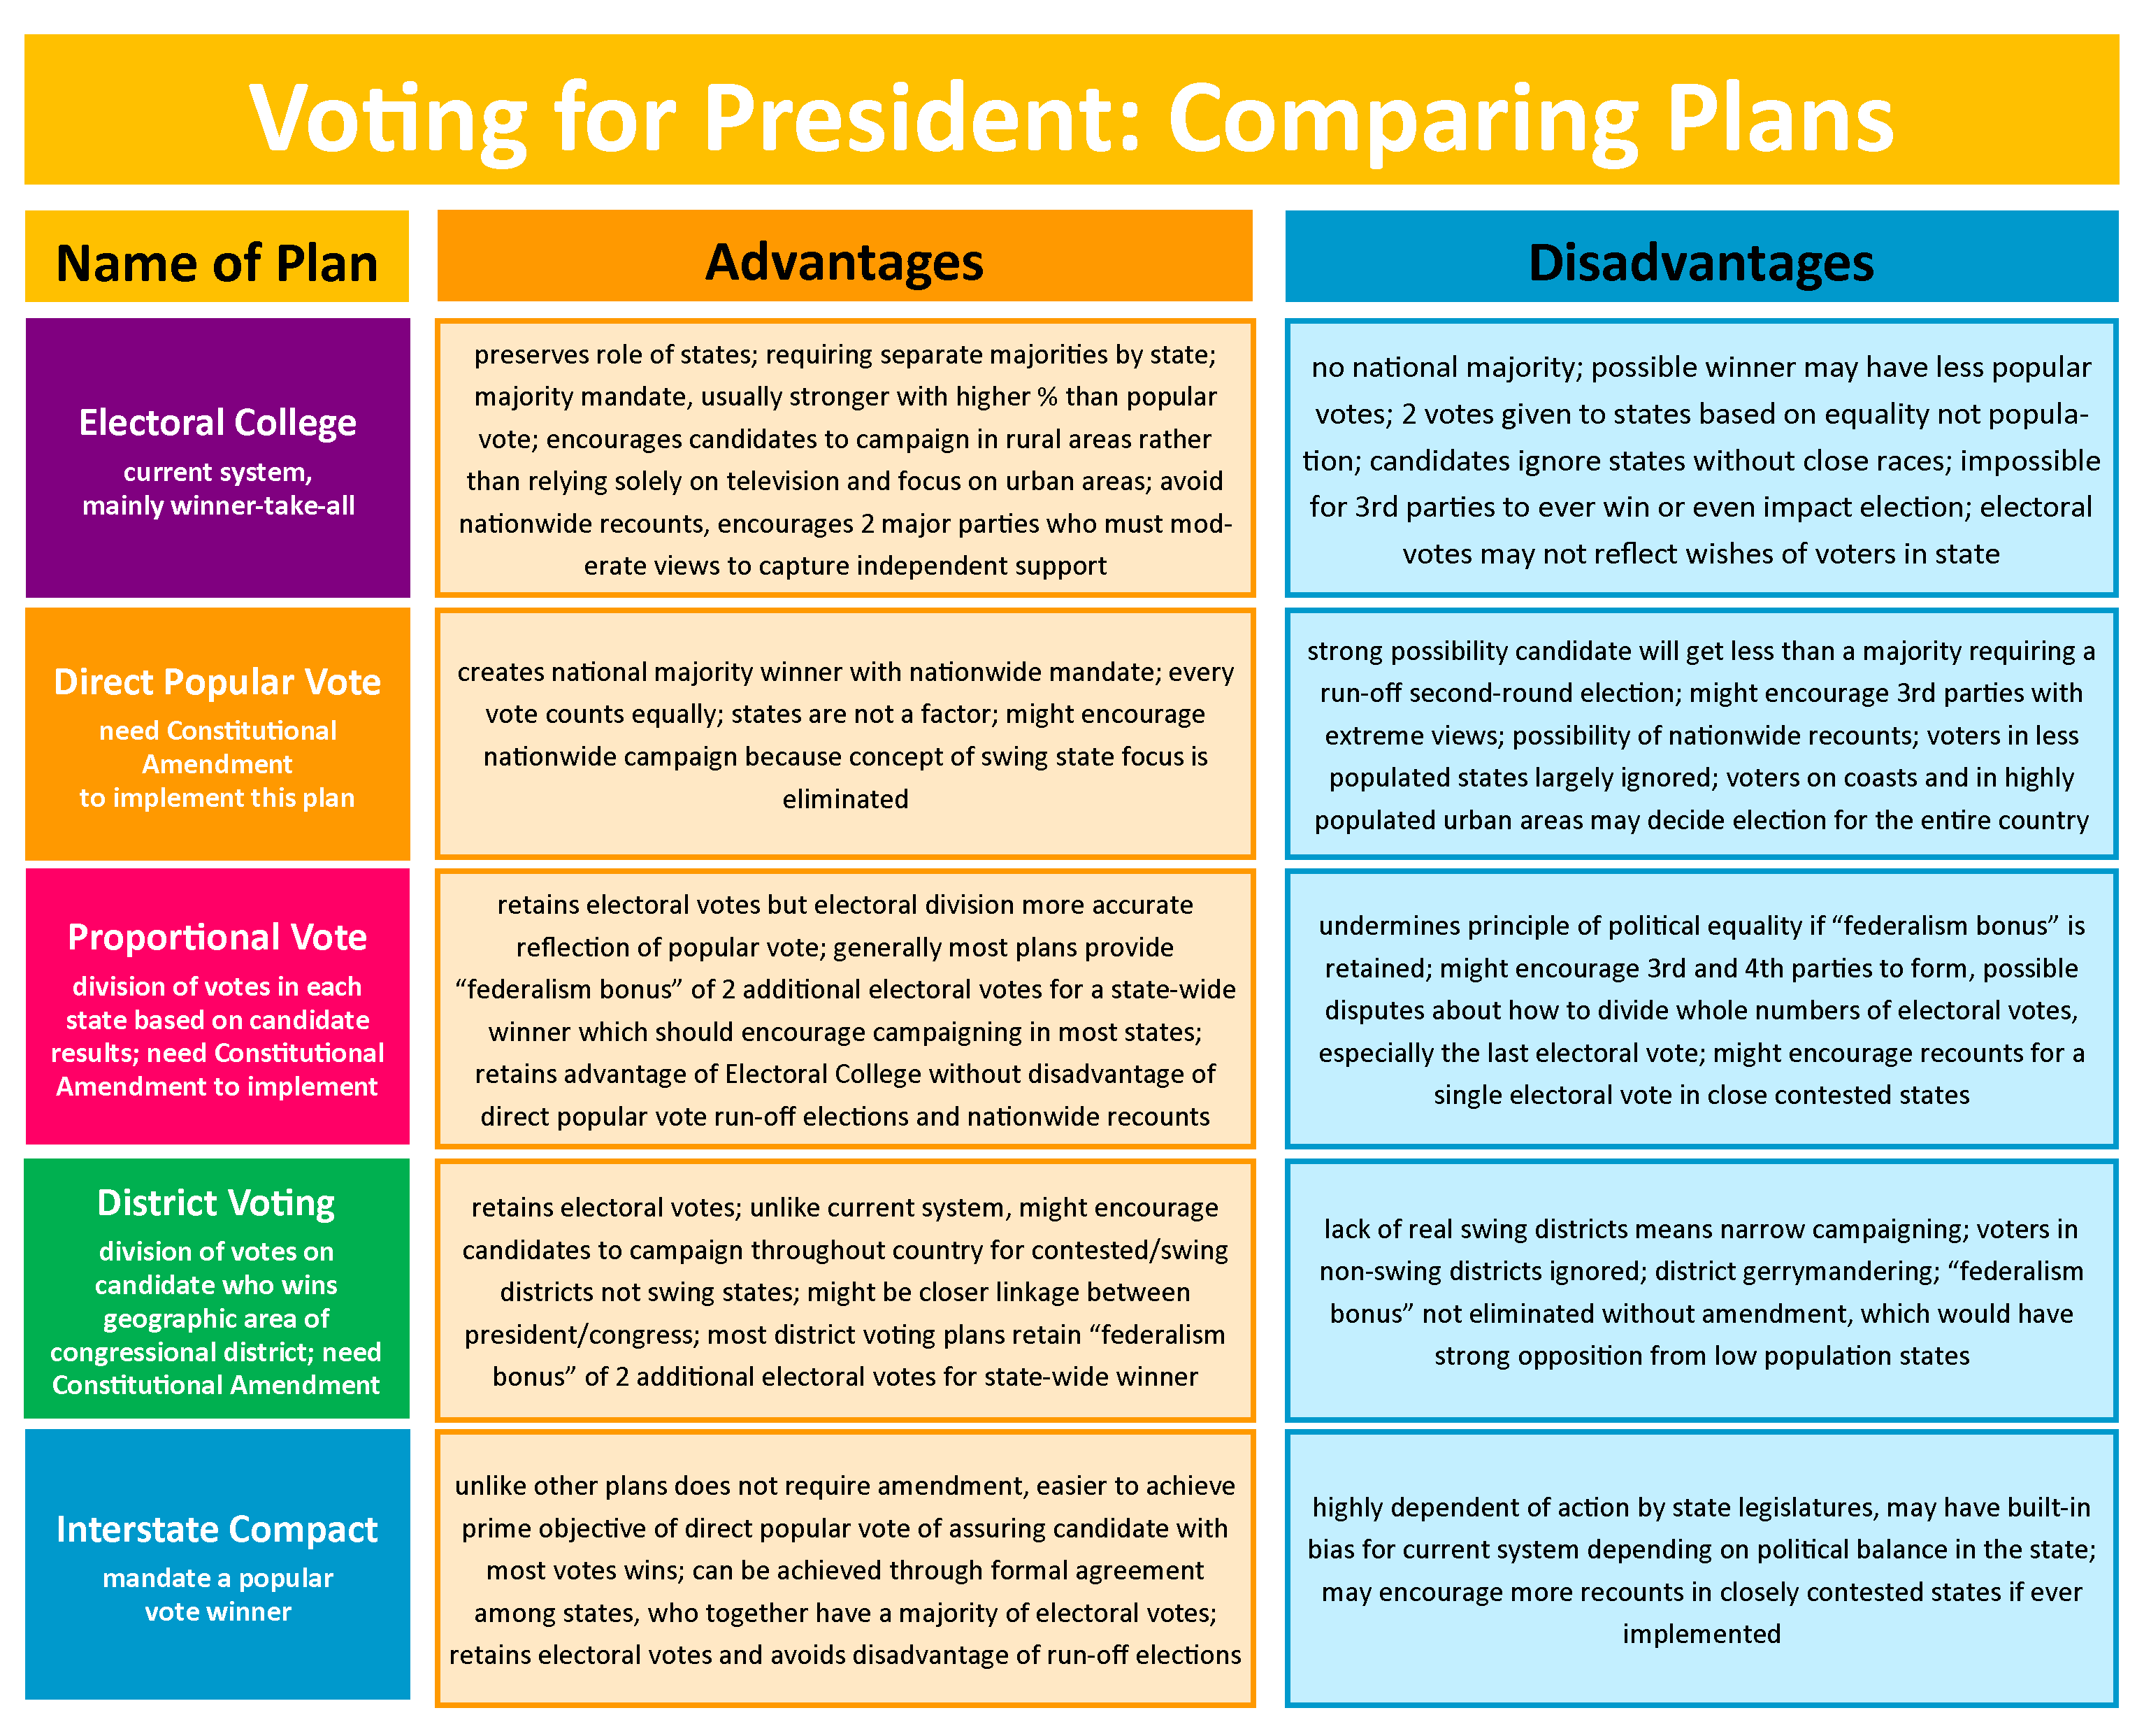 Chart revisiting the advantages and disadvantages of the various plans for electing the president of the United States.